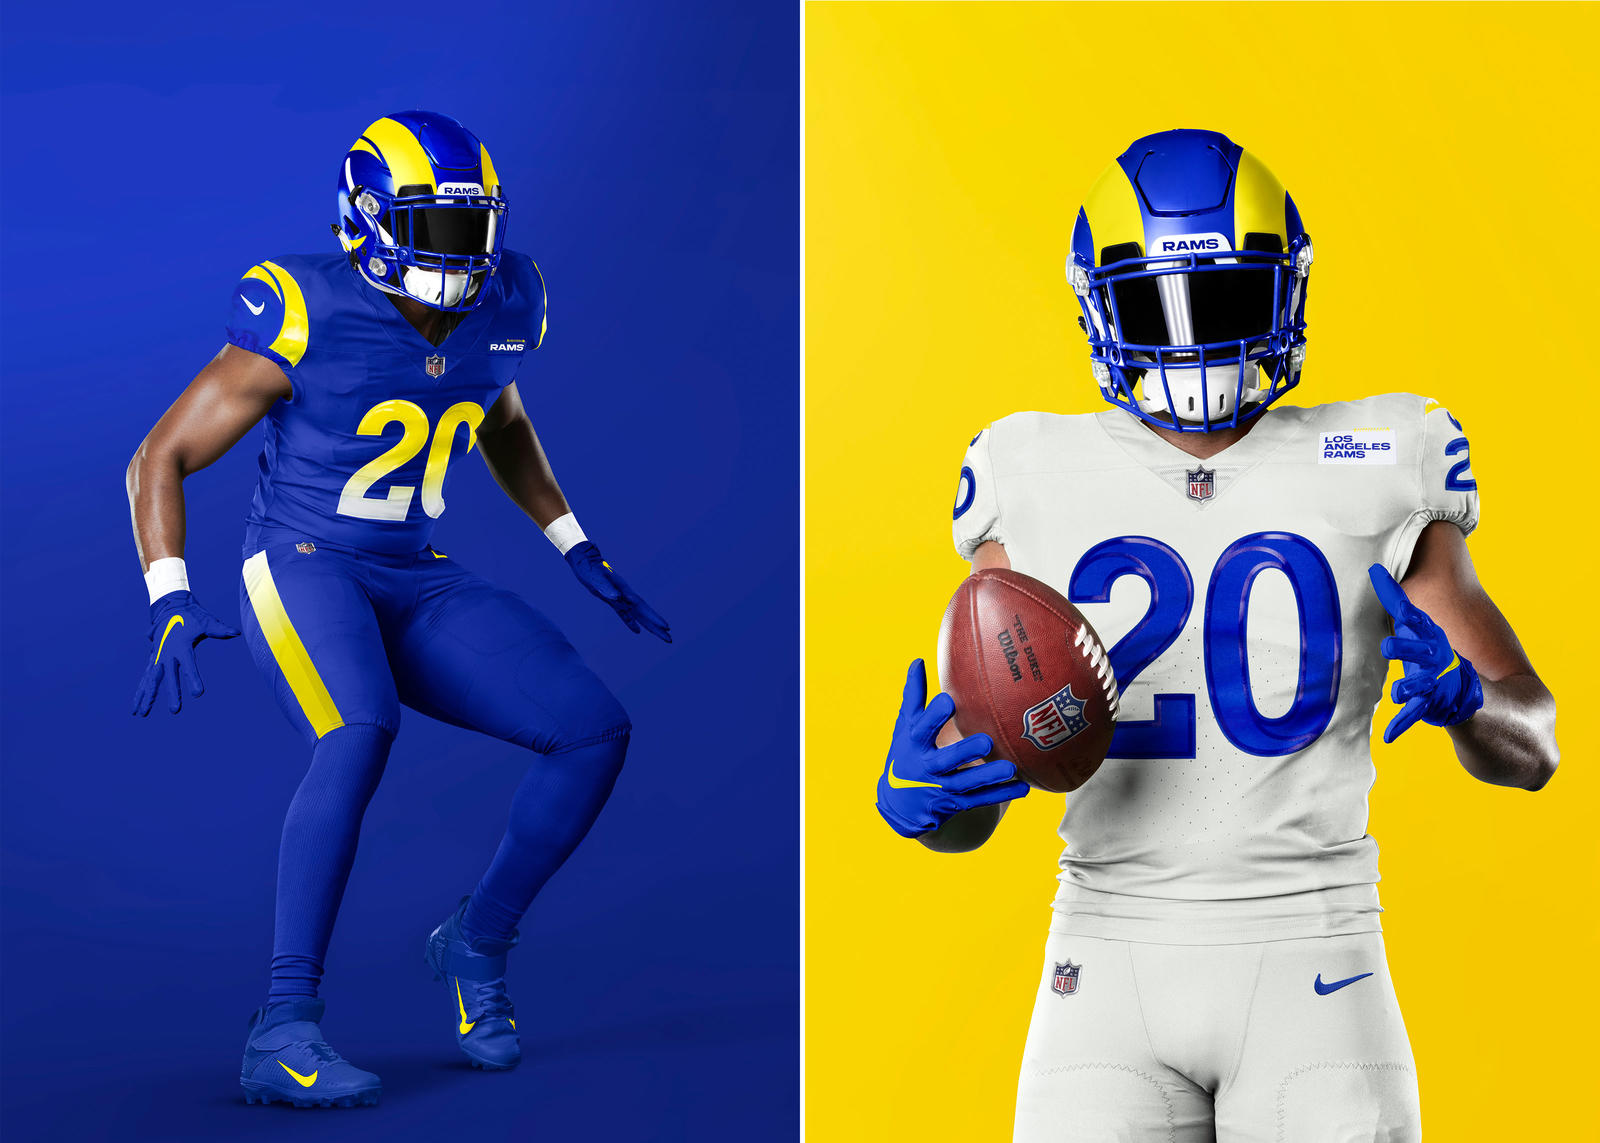 Los Angeles Rams 2020 Uniforms Official Images 0